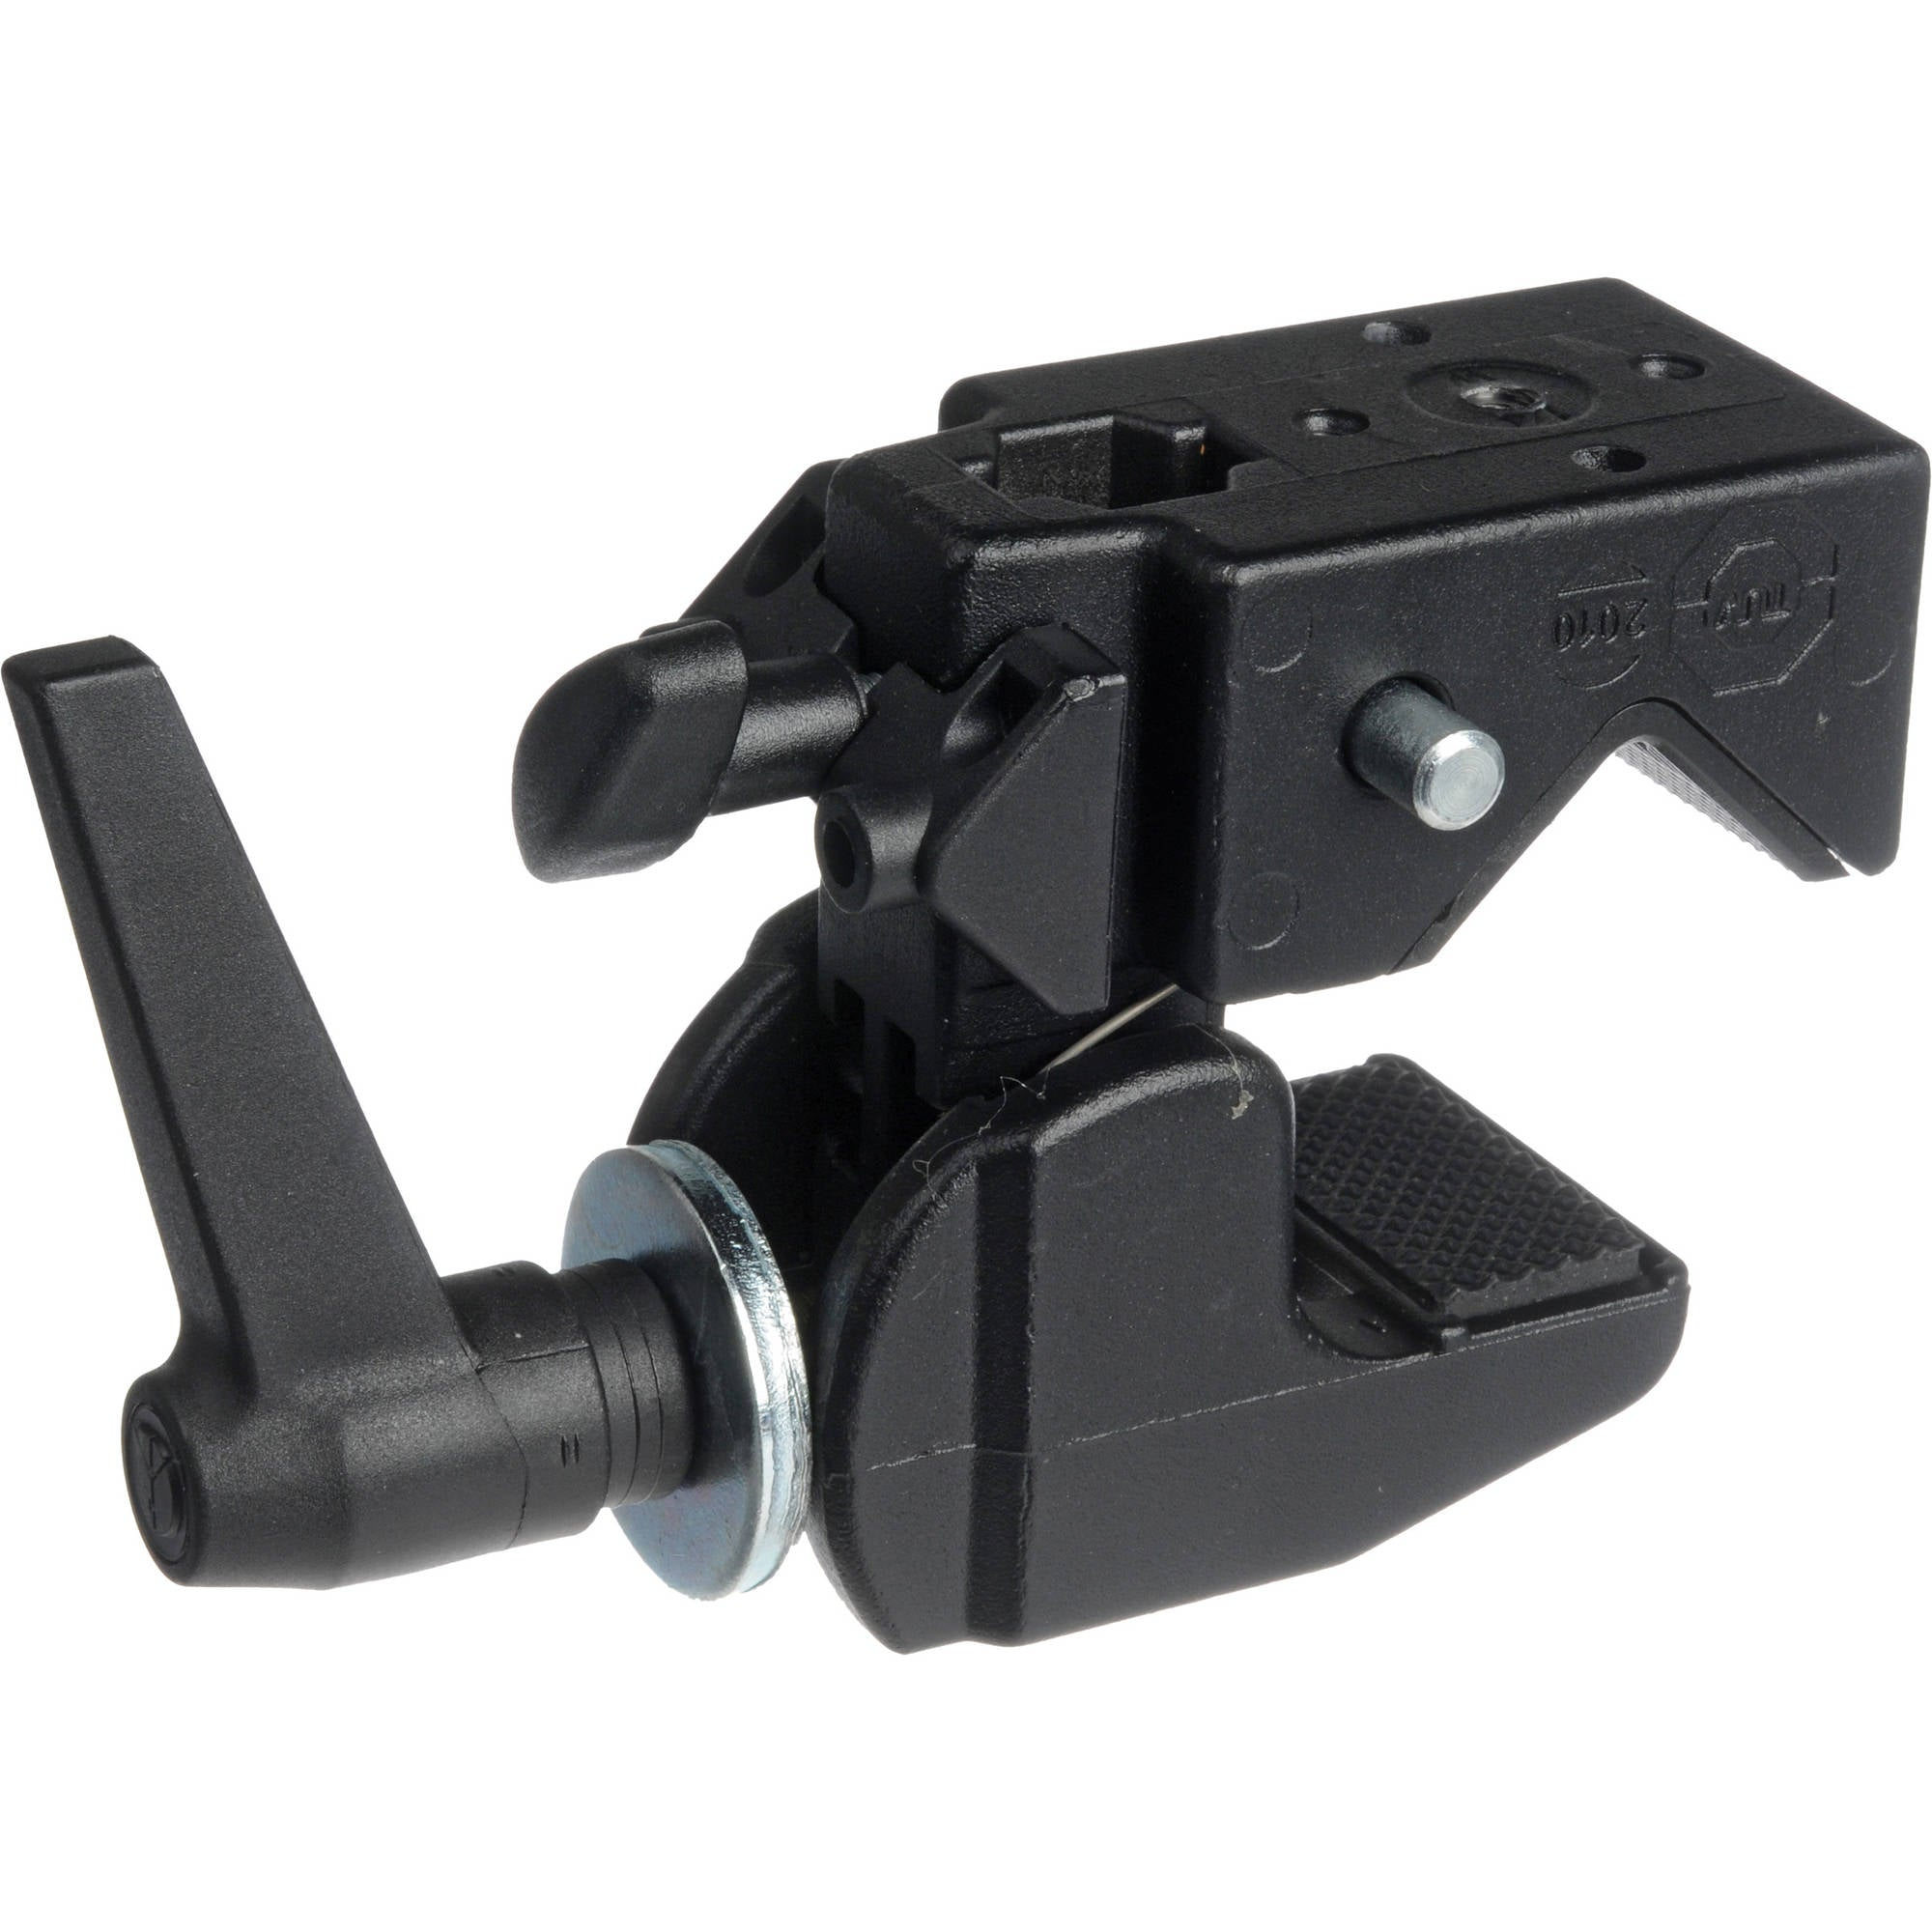 Manfrotto 035 Super Clamp without Stud